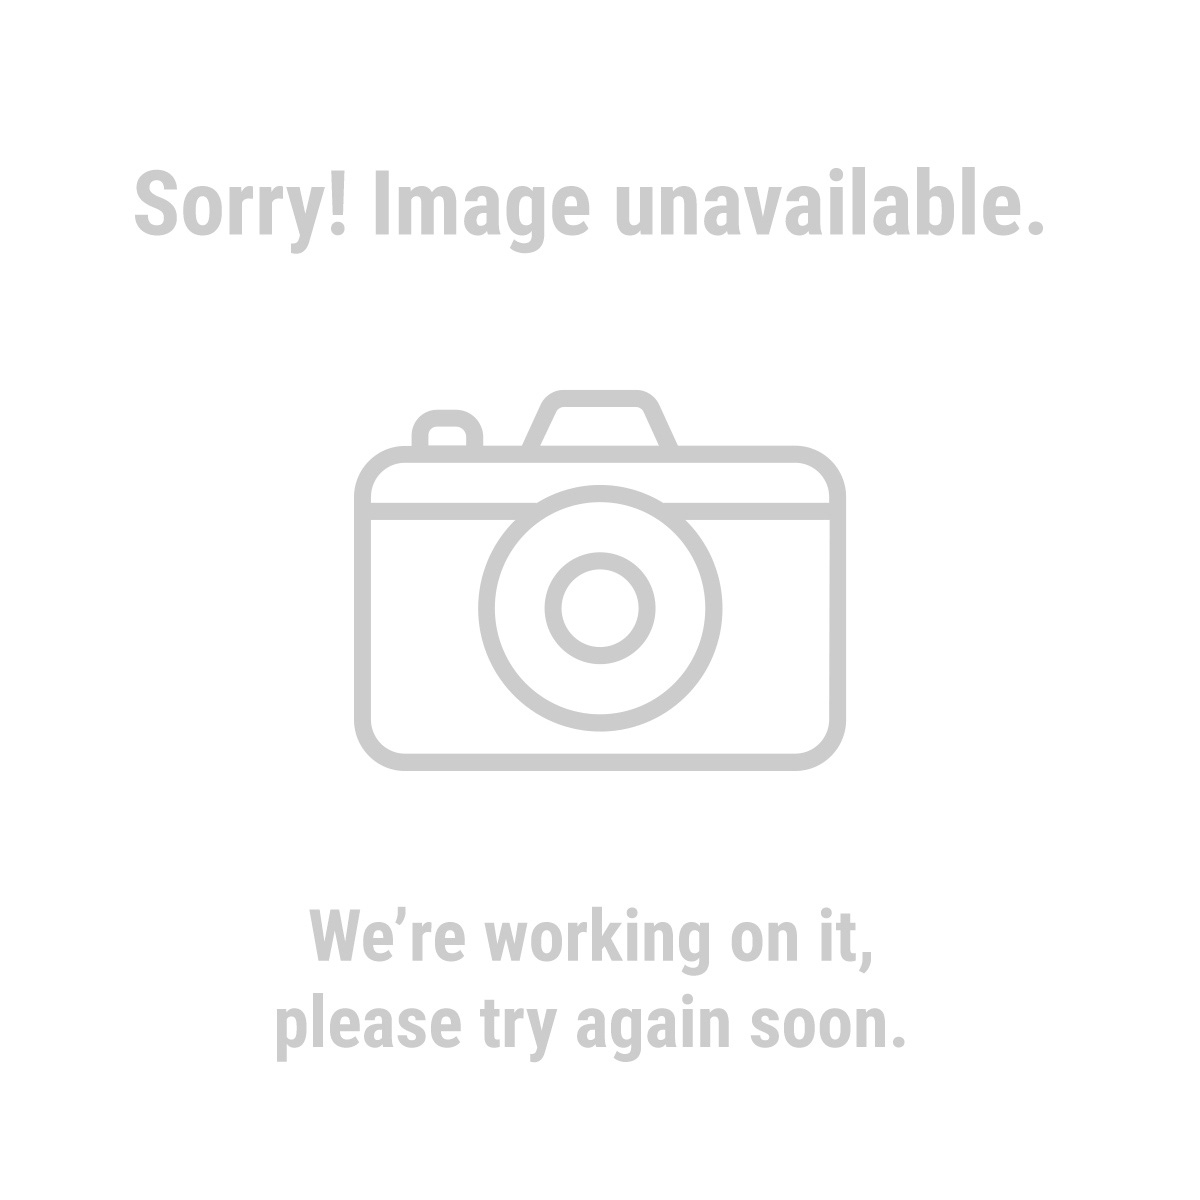 Chicago Electric Welding 61888 170 Amp-DC, 240 Volt, MIG/Flux Cored Welder